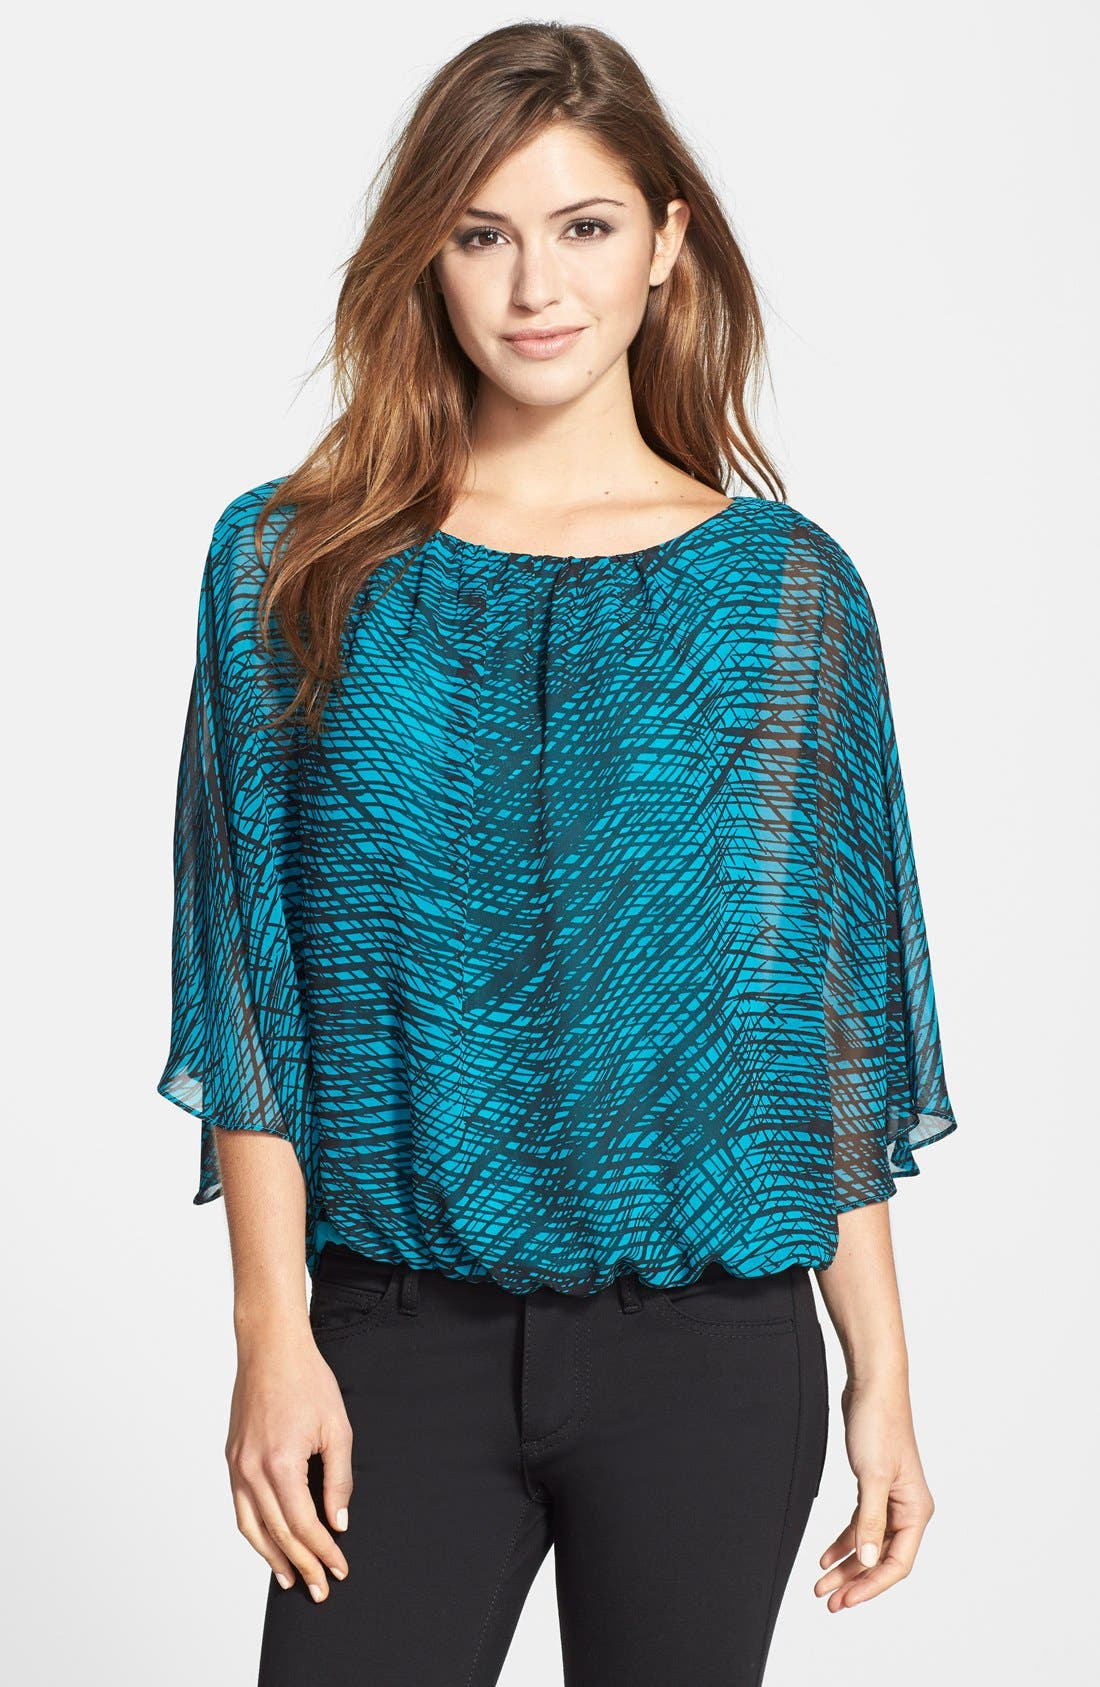 Alternate Image 1 Selected - Vince Camuto 'Twilight Thatches' Print Batwing Blouse